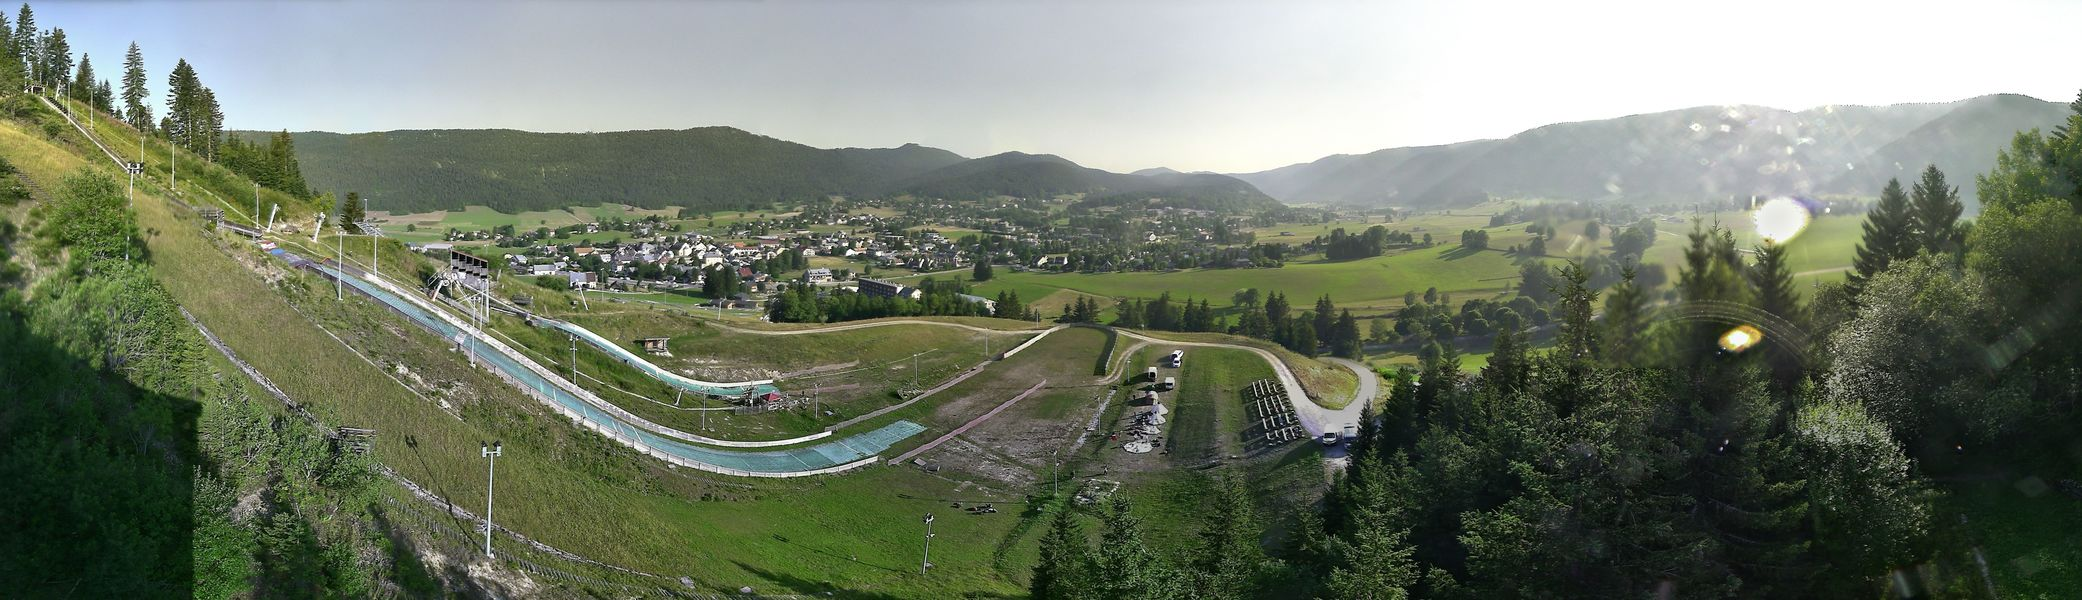 Webcam Autrans - Tremplin et Village - 1050m